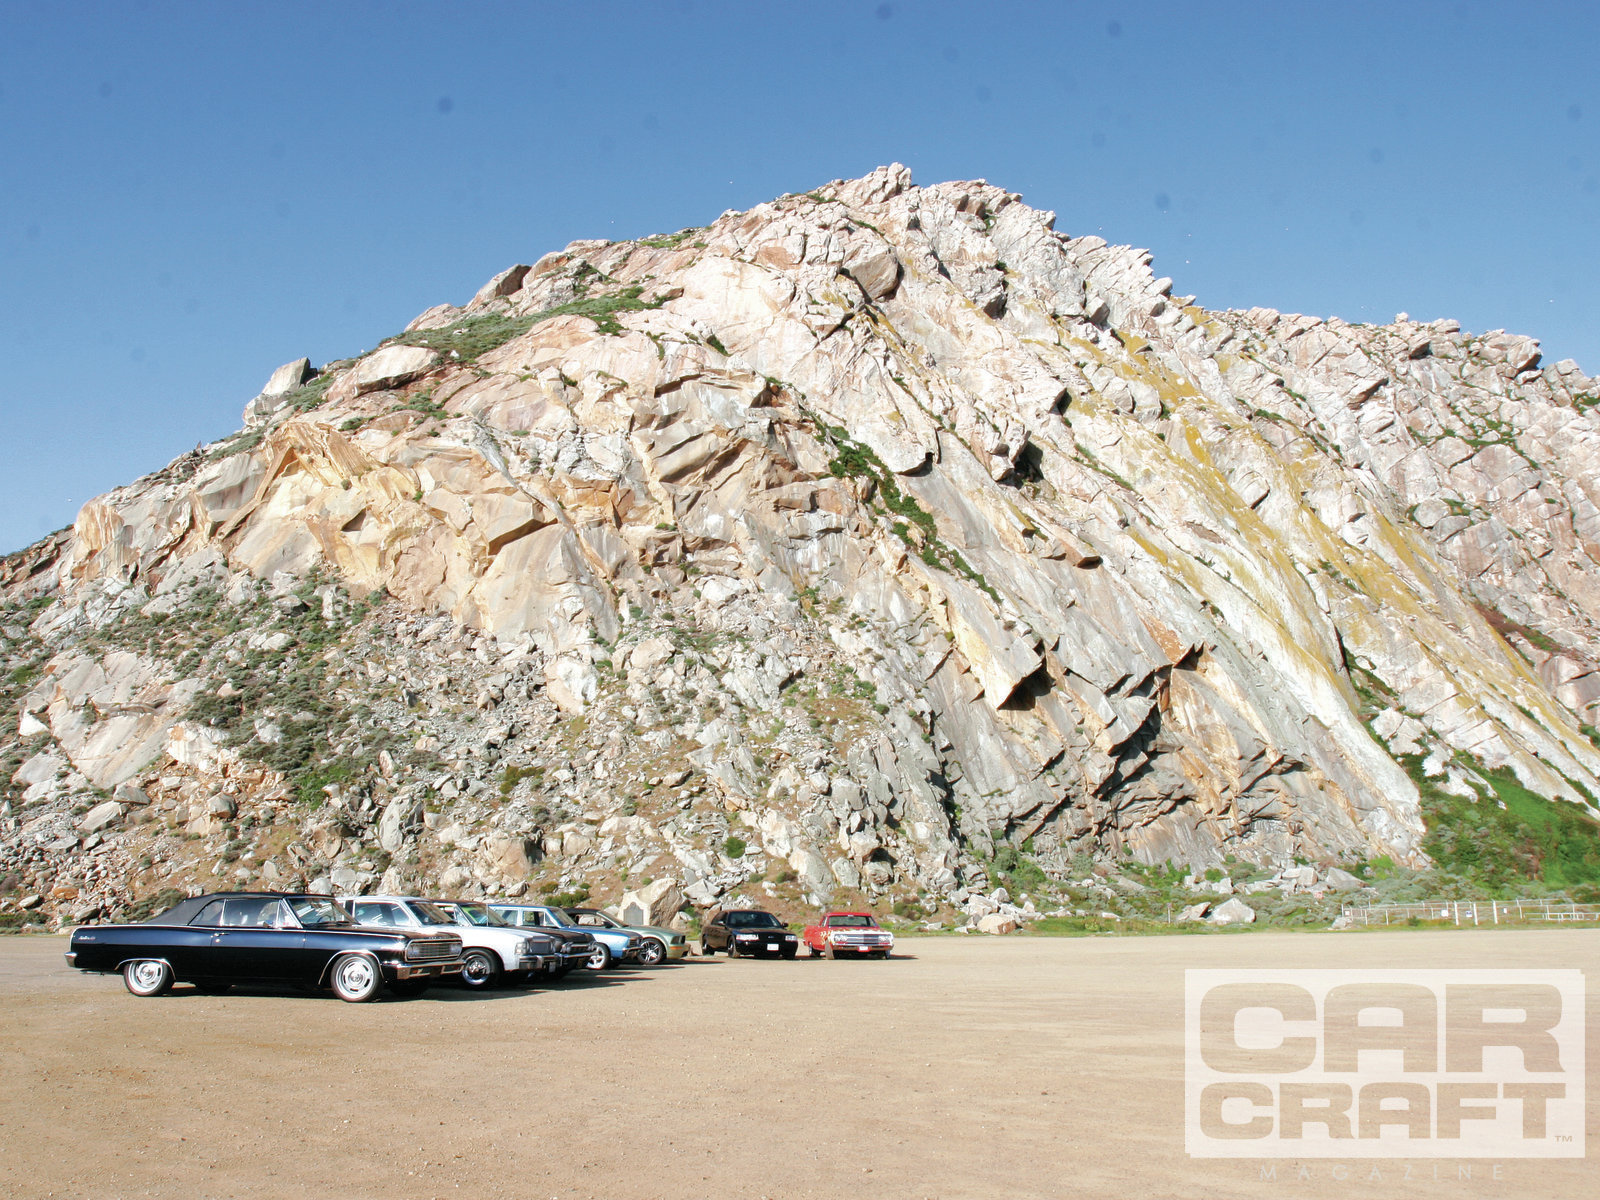 Sunday morning as we were leaving, we took this group photo in front of the Rock in Morro Bay.